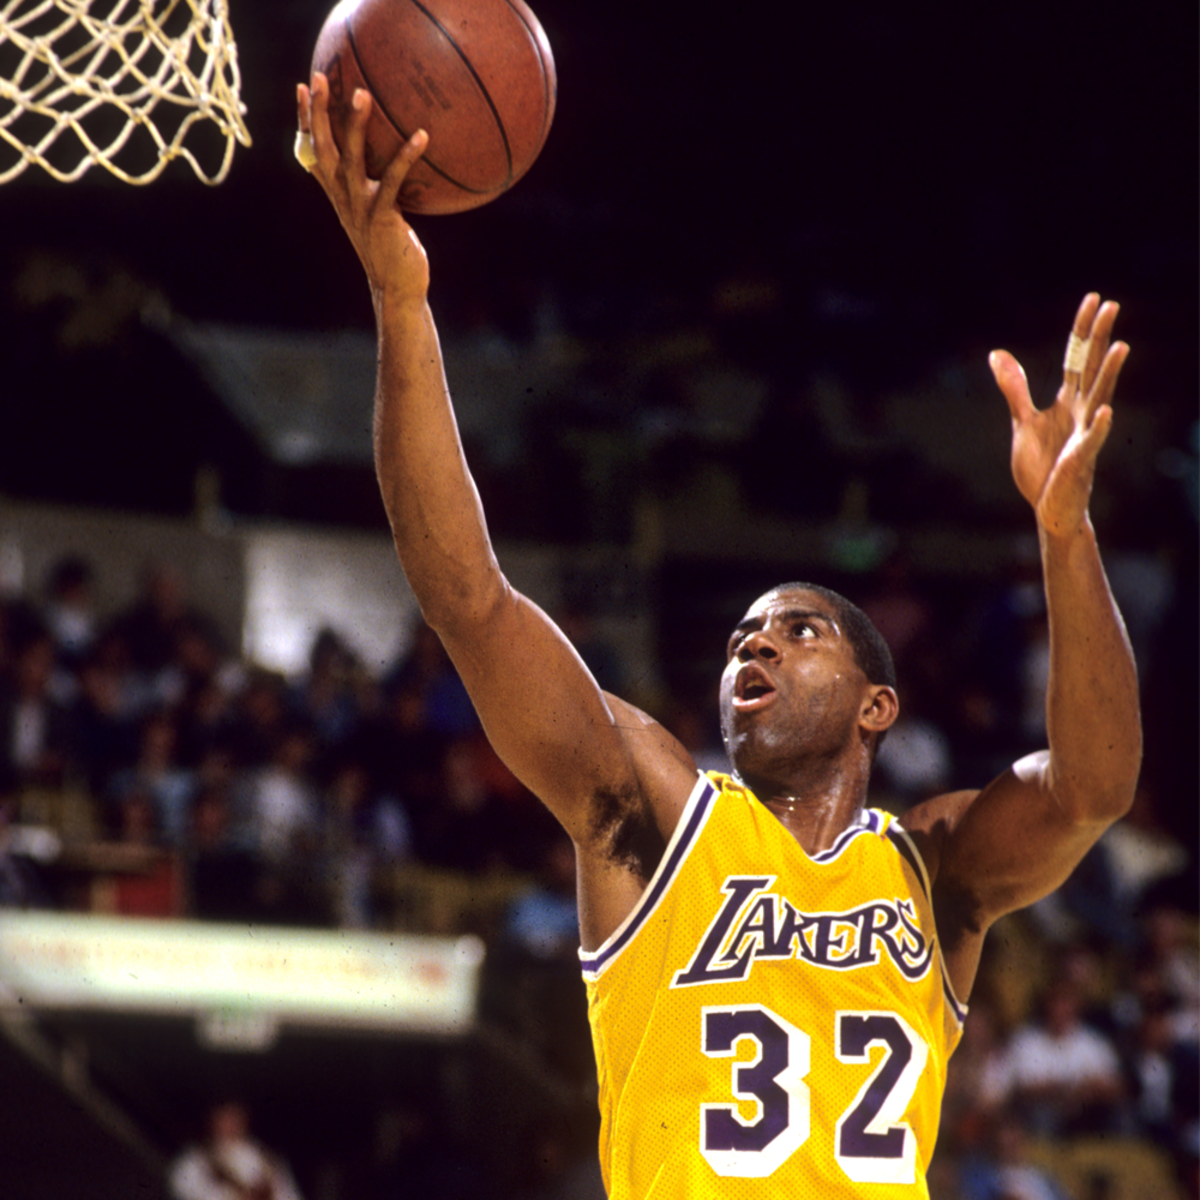 Magic Johnson jumped for a layup.